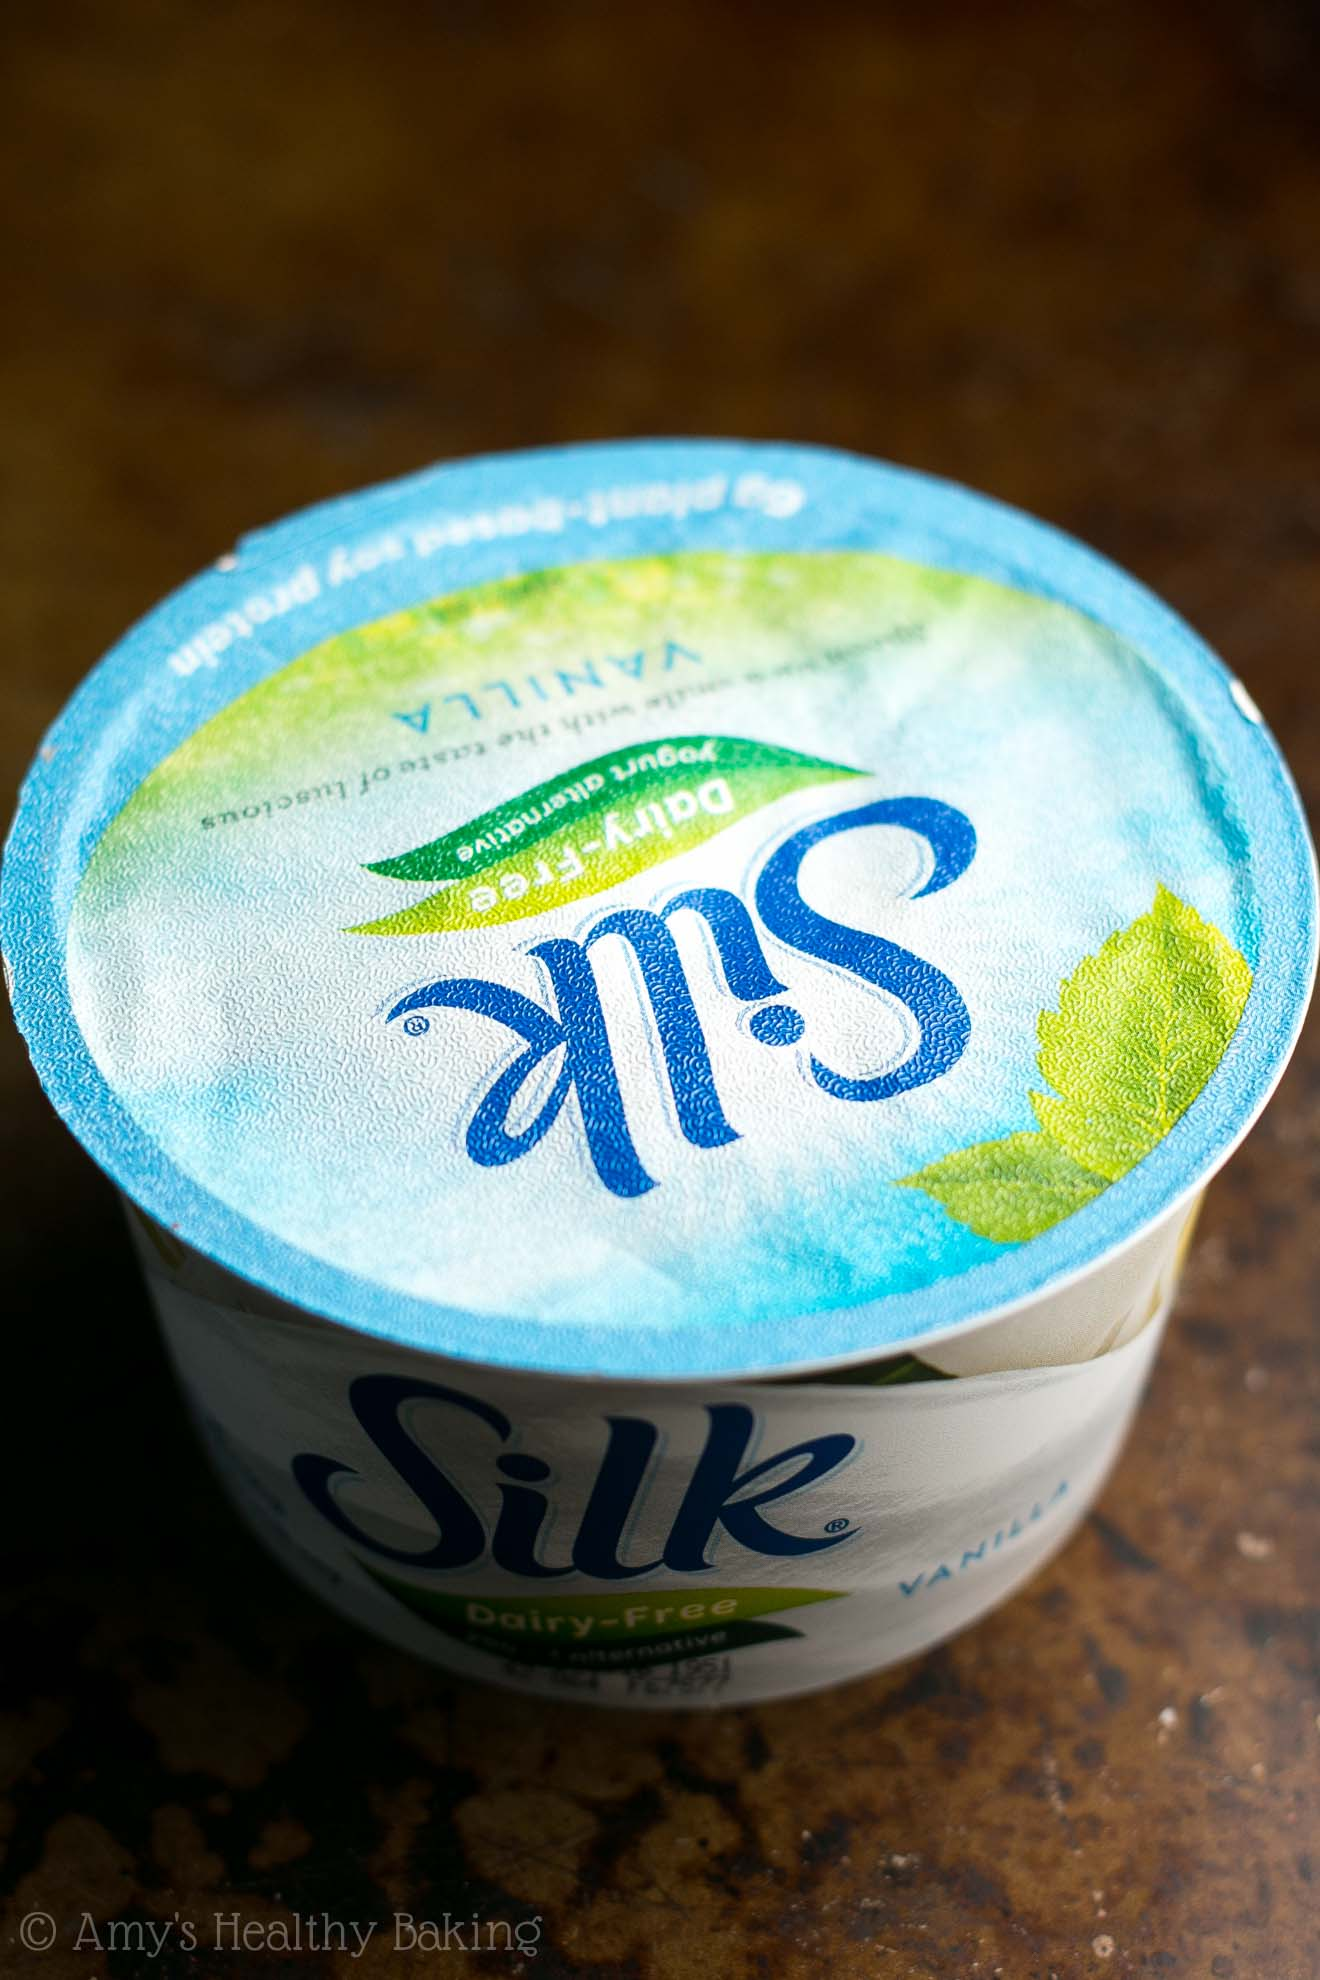 Silk Non-Dairy Vanilla Yogurt Alternative